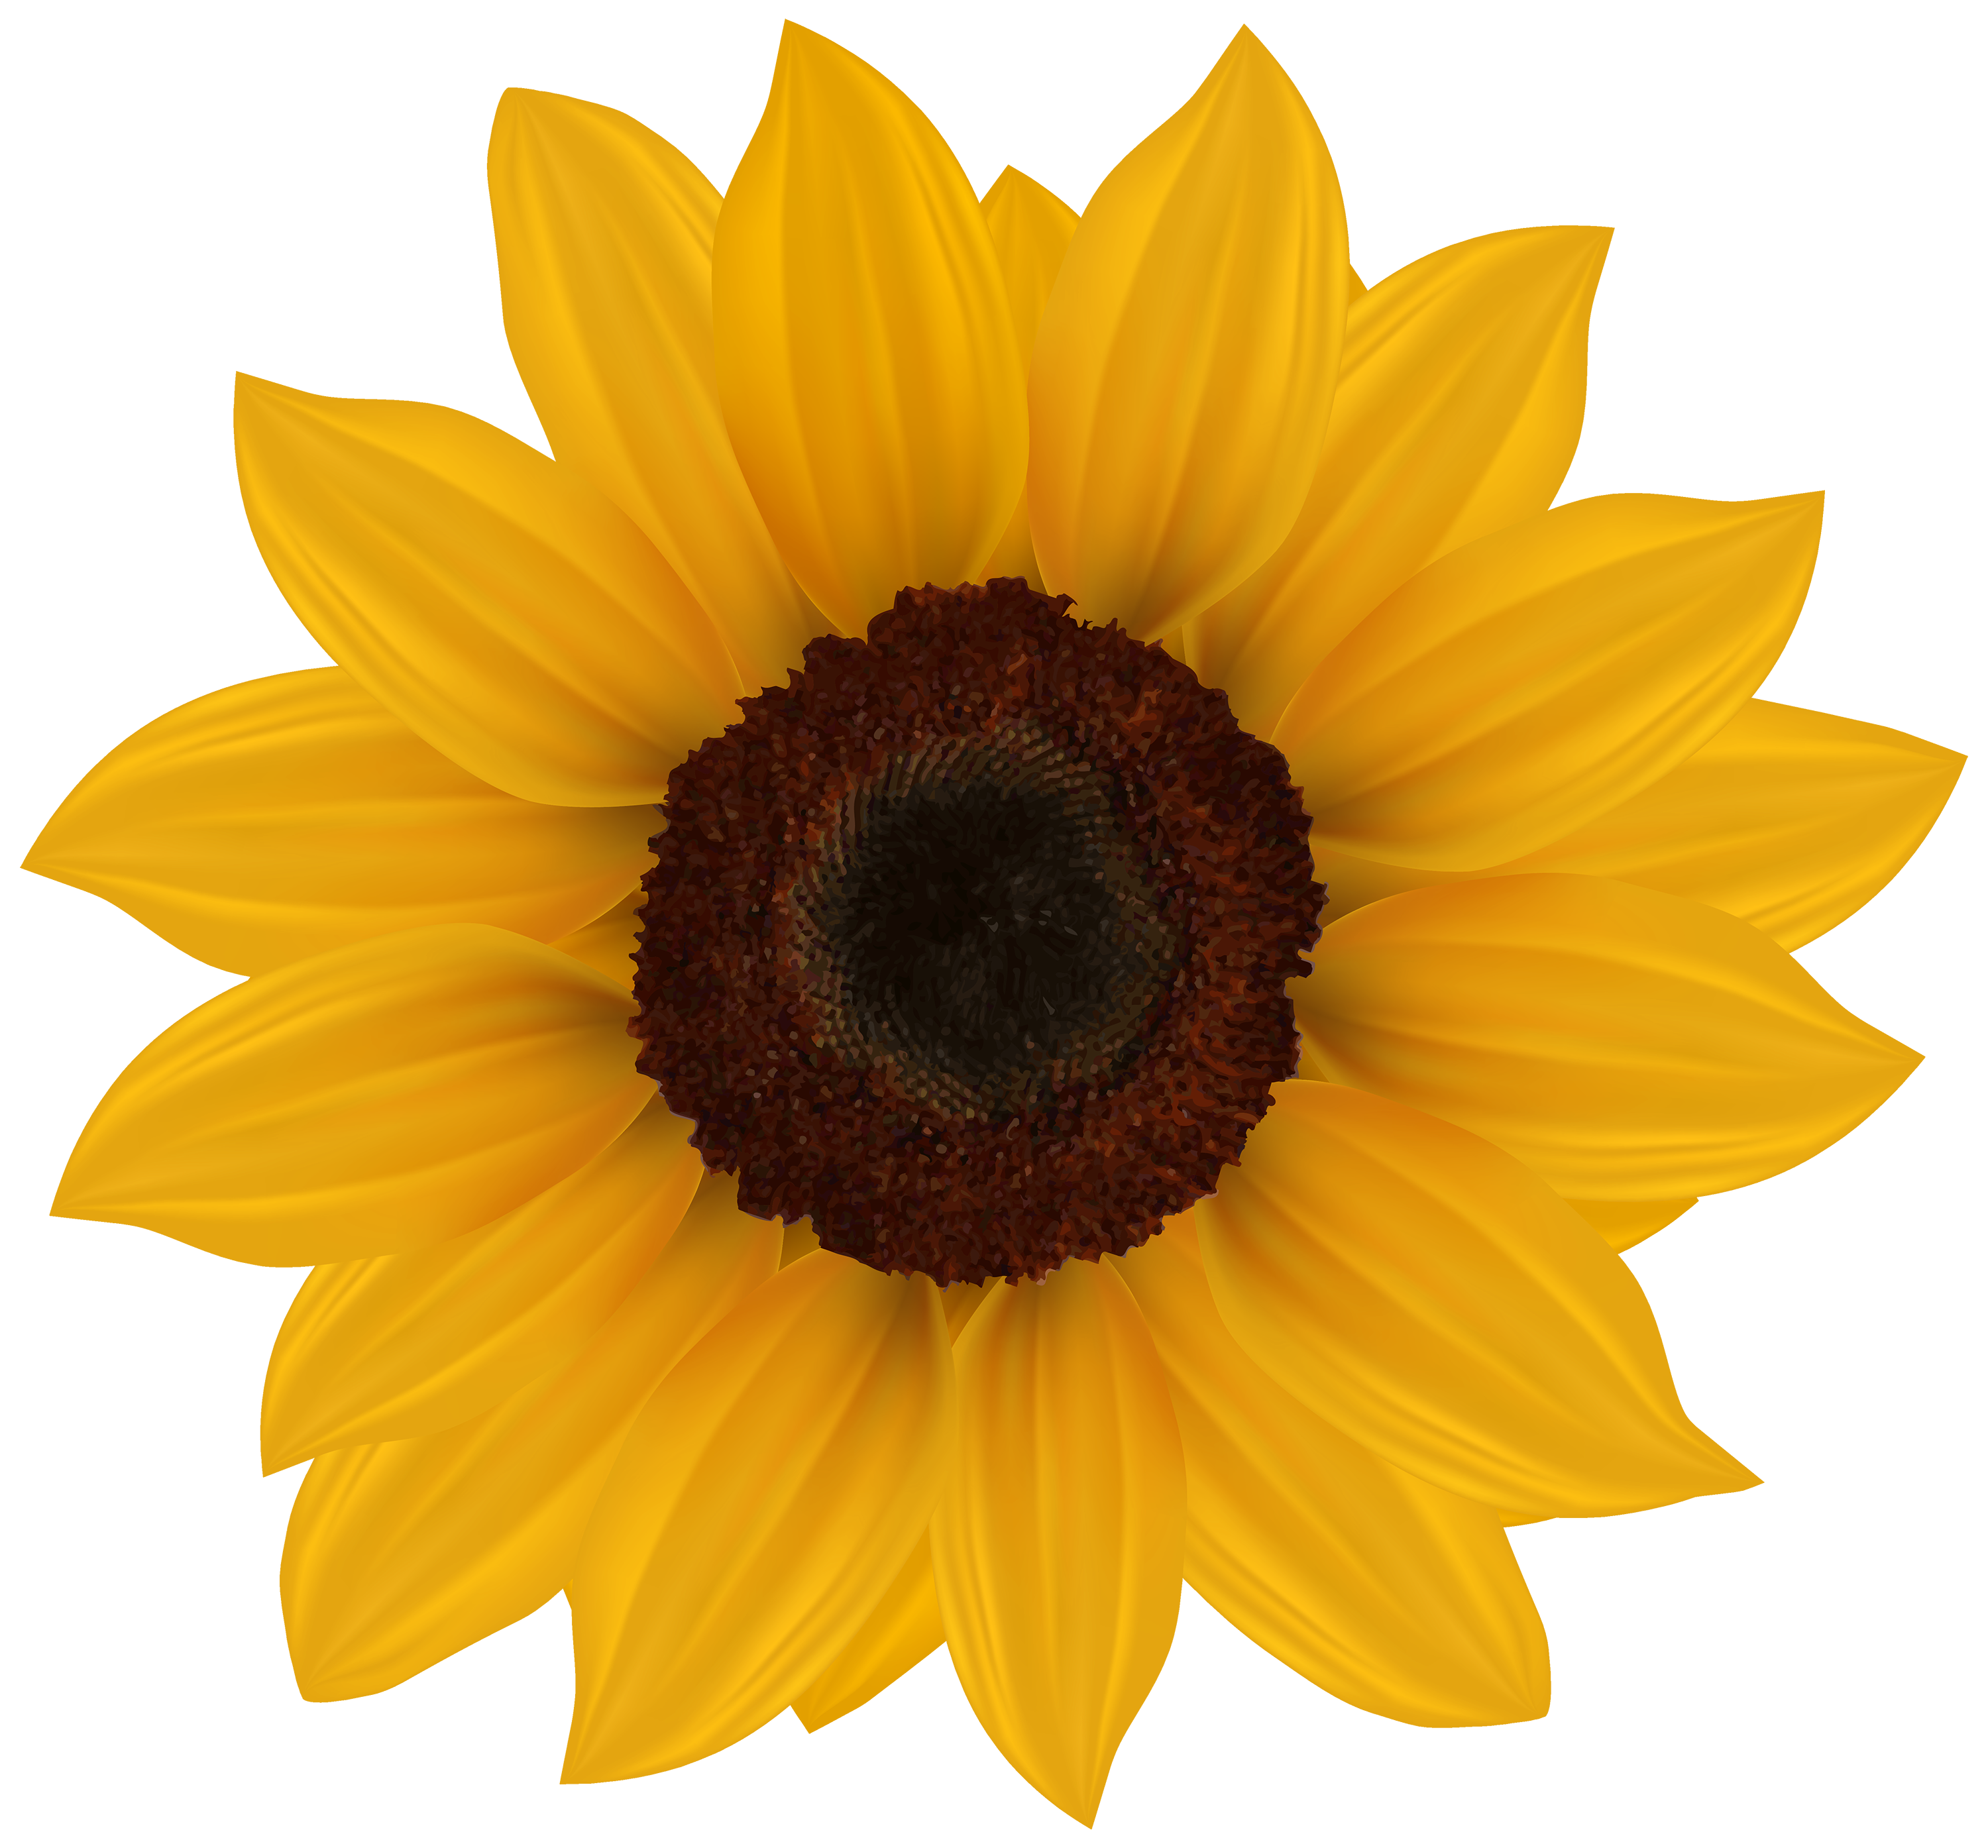 Clipart fall sunflower. Clip art images onclipart